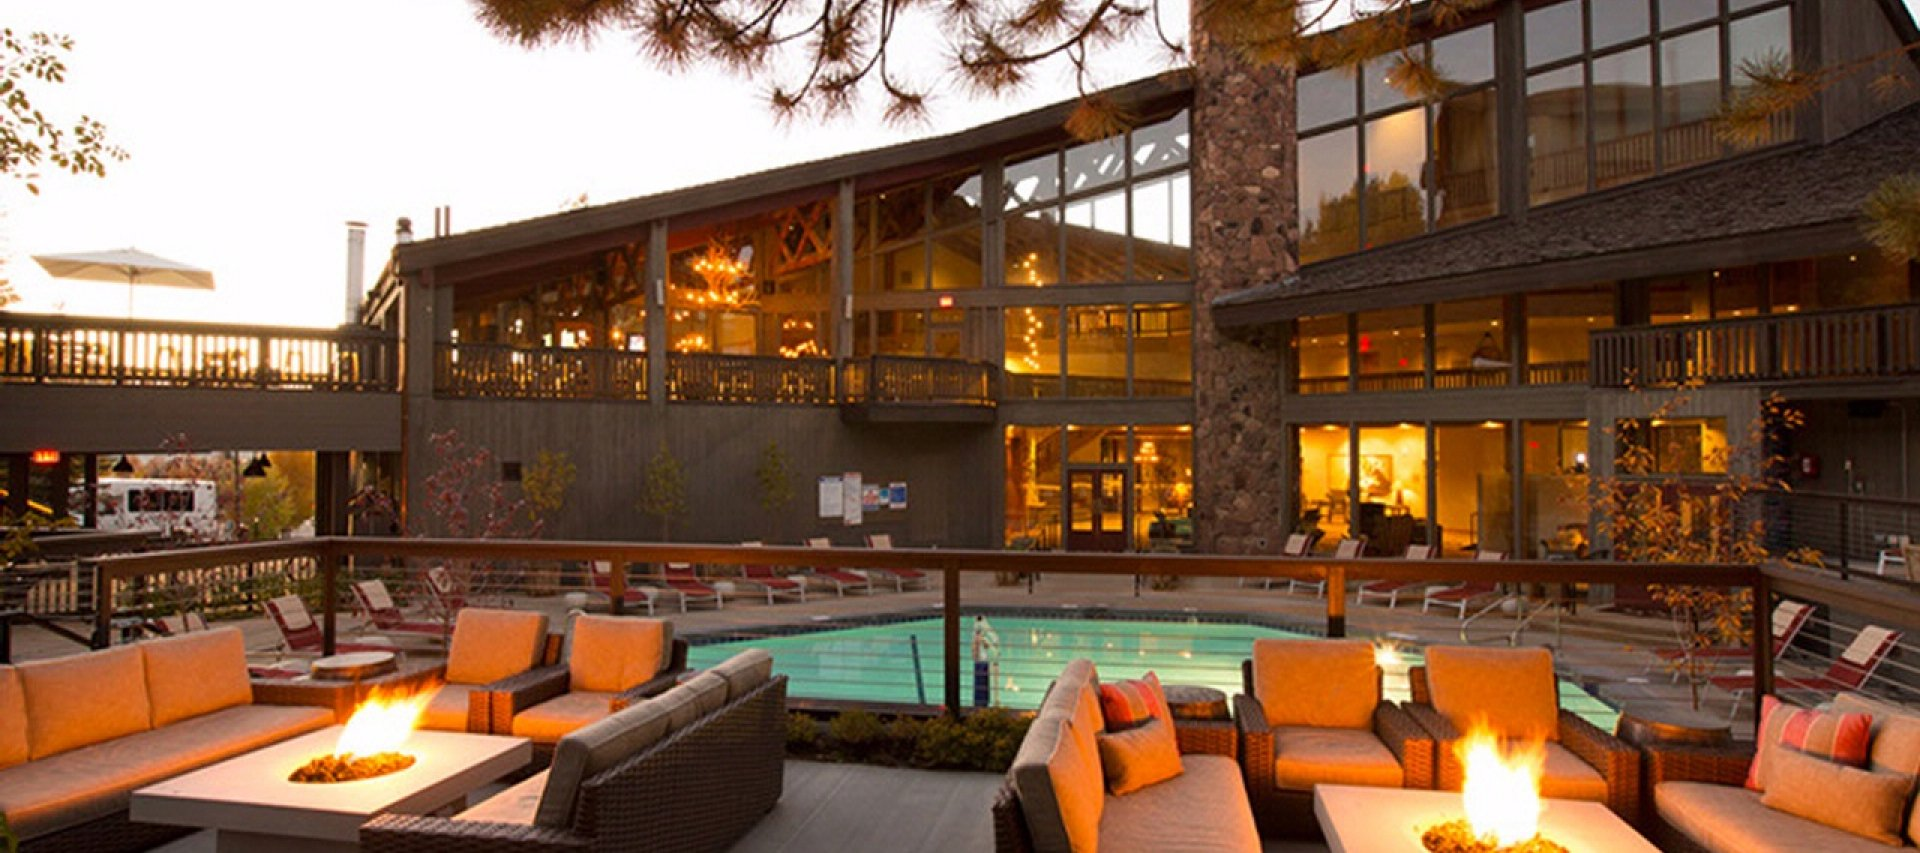 Check out the great lodging options Jackson Hole has to offer